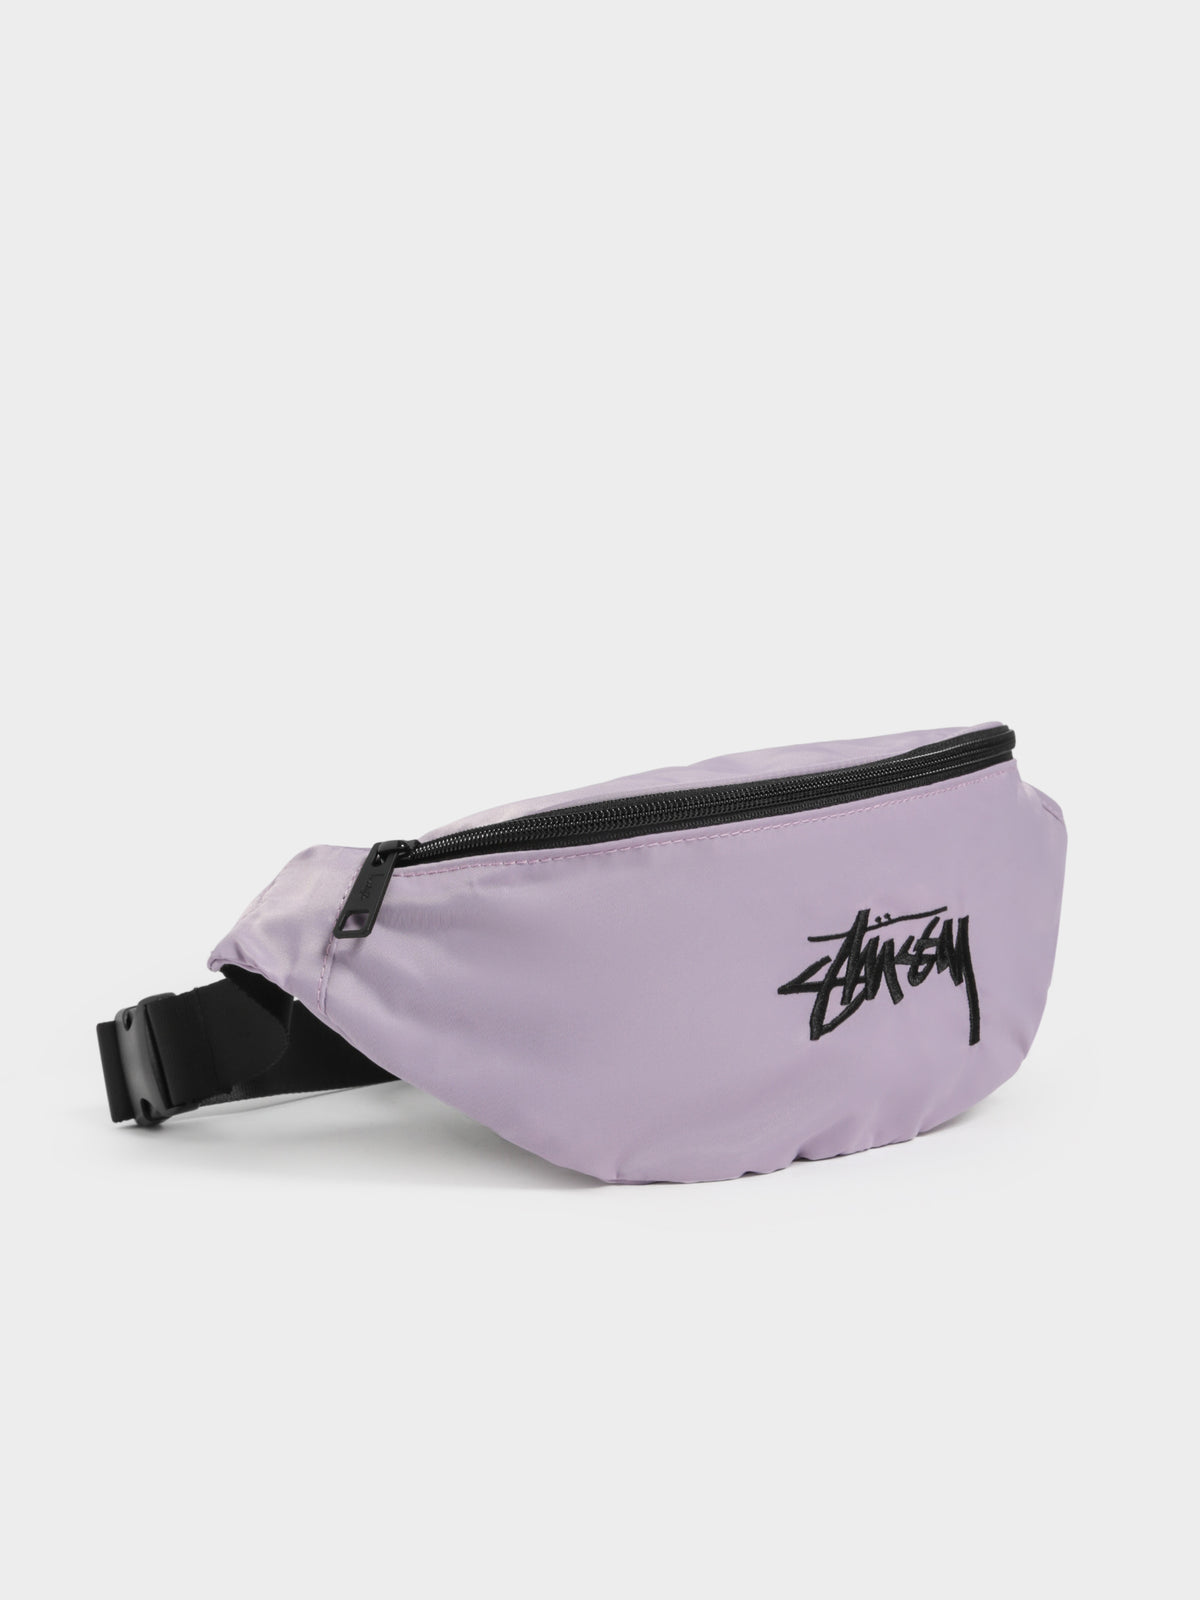 Stock Waistbag in Lilac